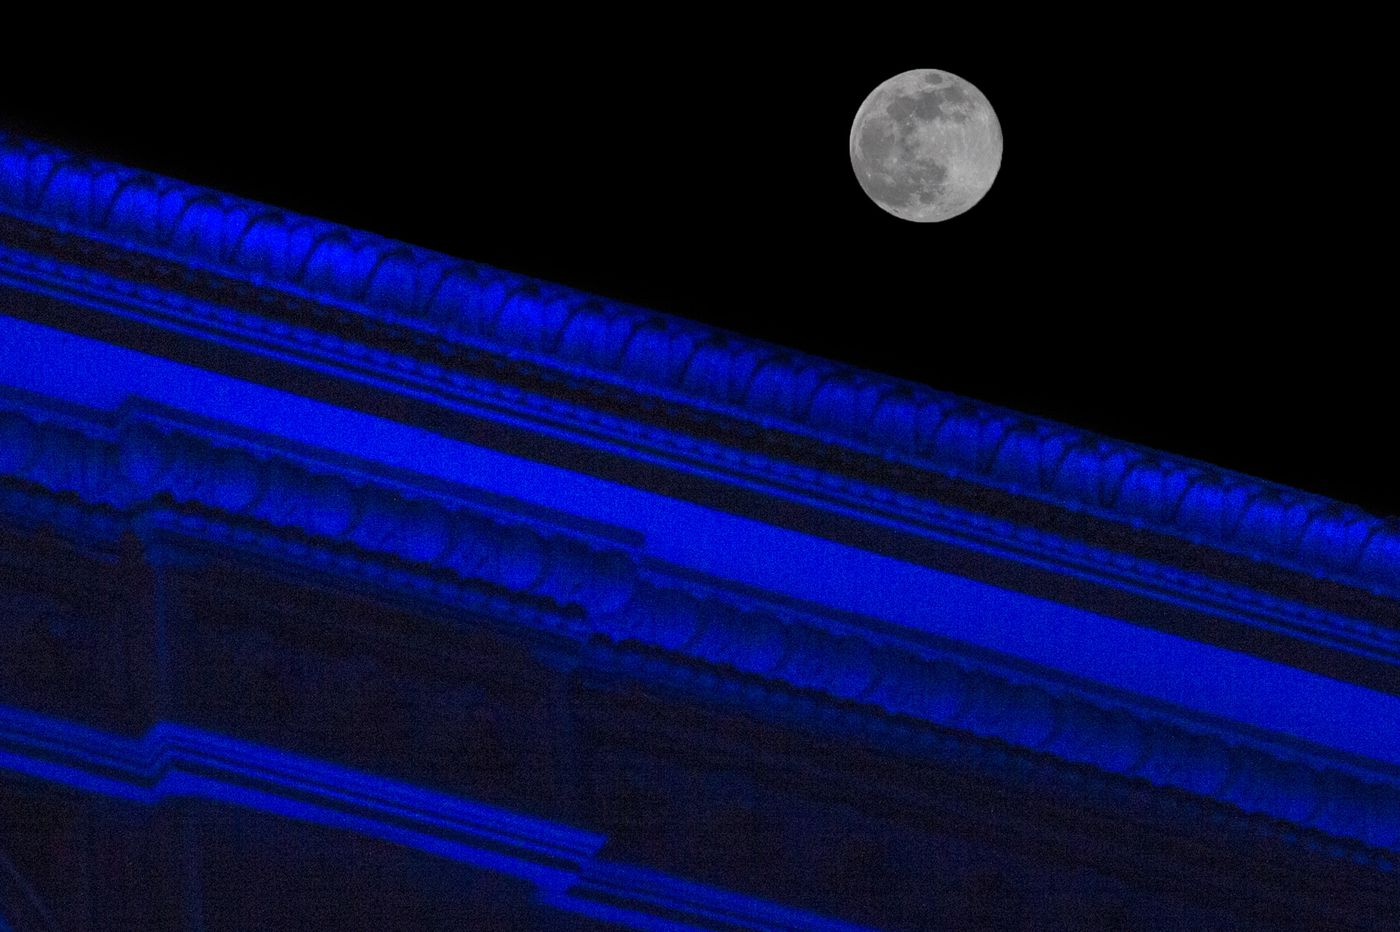 Humans have long been fascinated by the moon, and this year we get the first Halloween full moon of the millennium